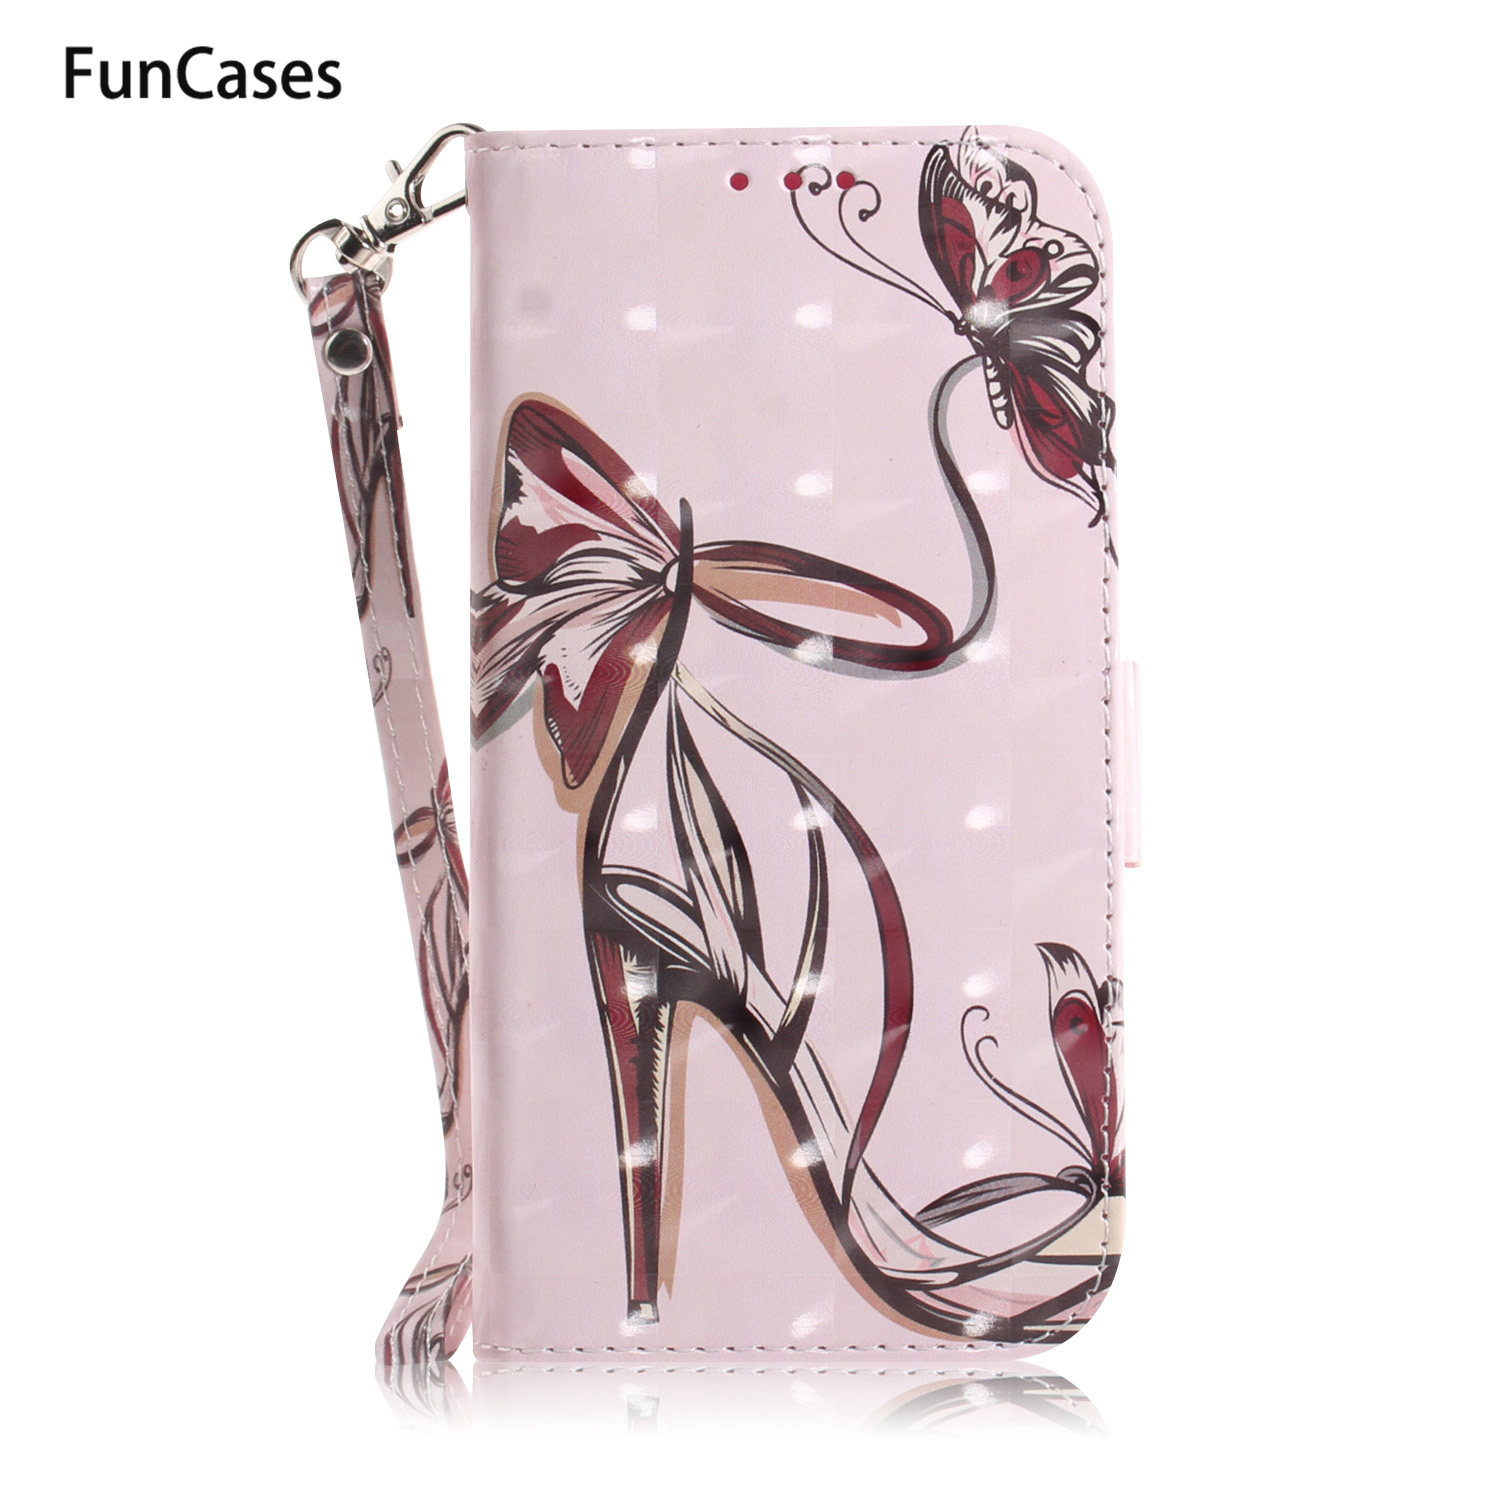 Case For capa Huawei Y6 2018 PU Leather Flip Phone Bag sFor Huawei Honor 7A Y6 Prime 2018 Nova 2i 3 3E 3i 4 <font><b>Y5</b></font> Y9 <font><b>2019</b></font> Etui image